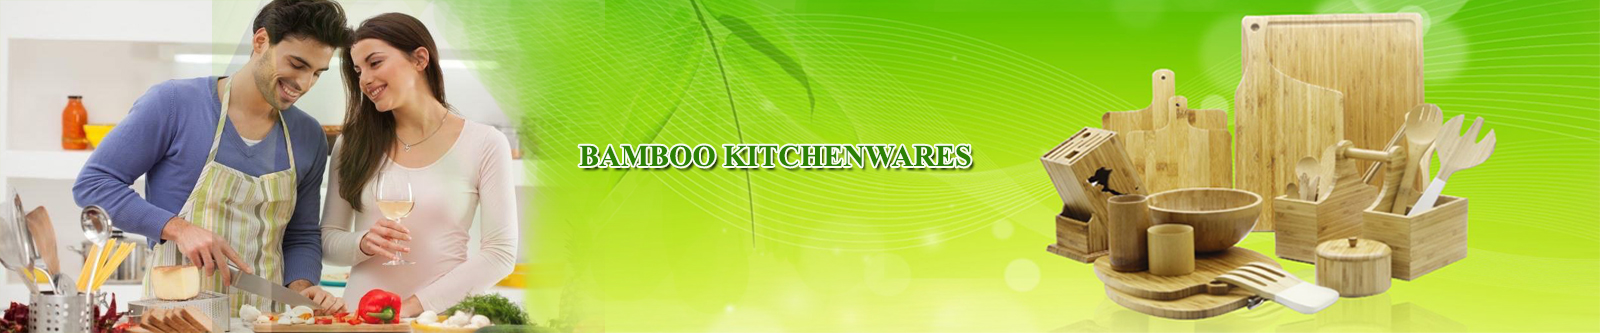 Bamboo Kitchenwares